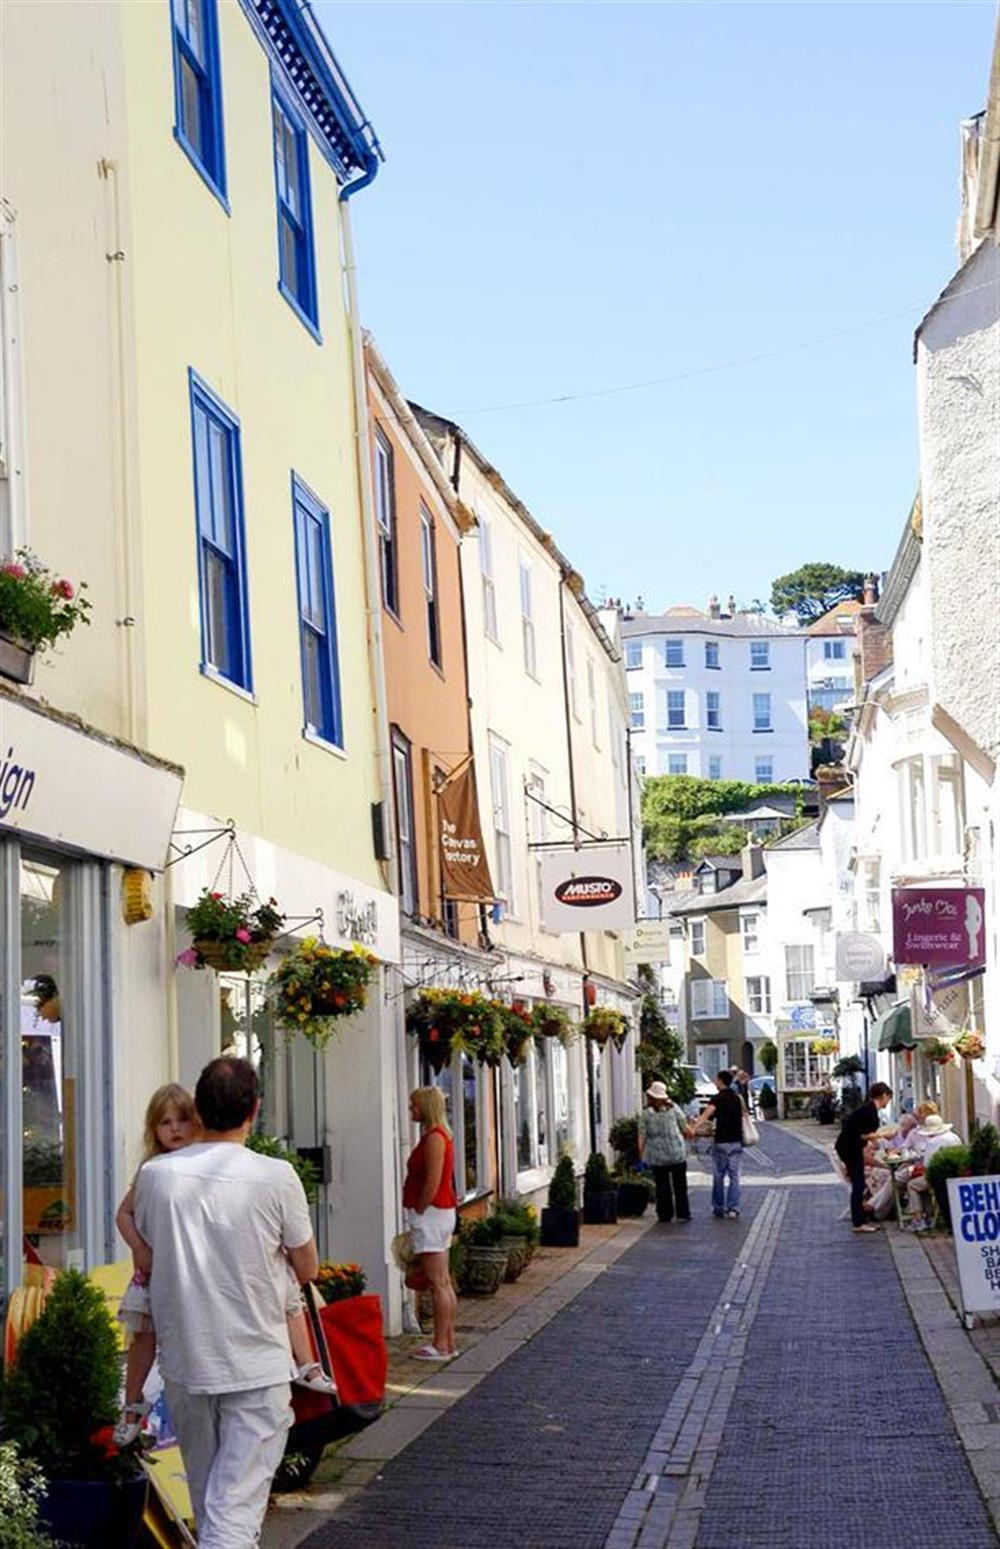 Delightful shopping streets in Dartmouth - lots of boutique and independent shops, bistros and cafes.